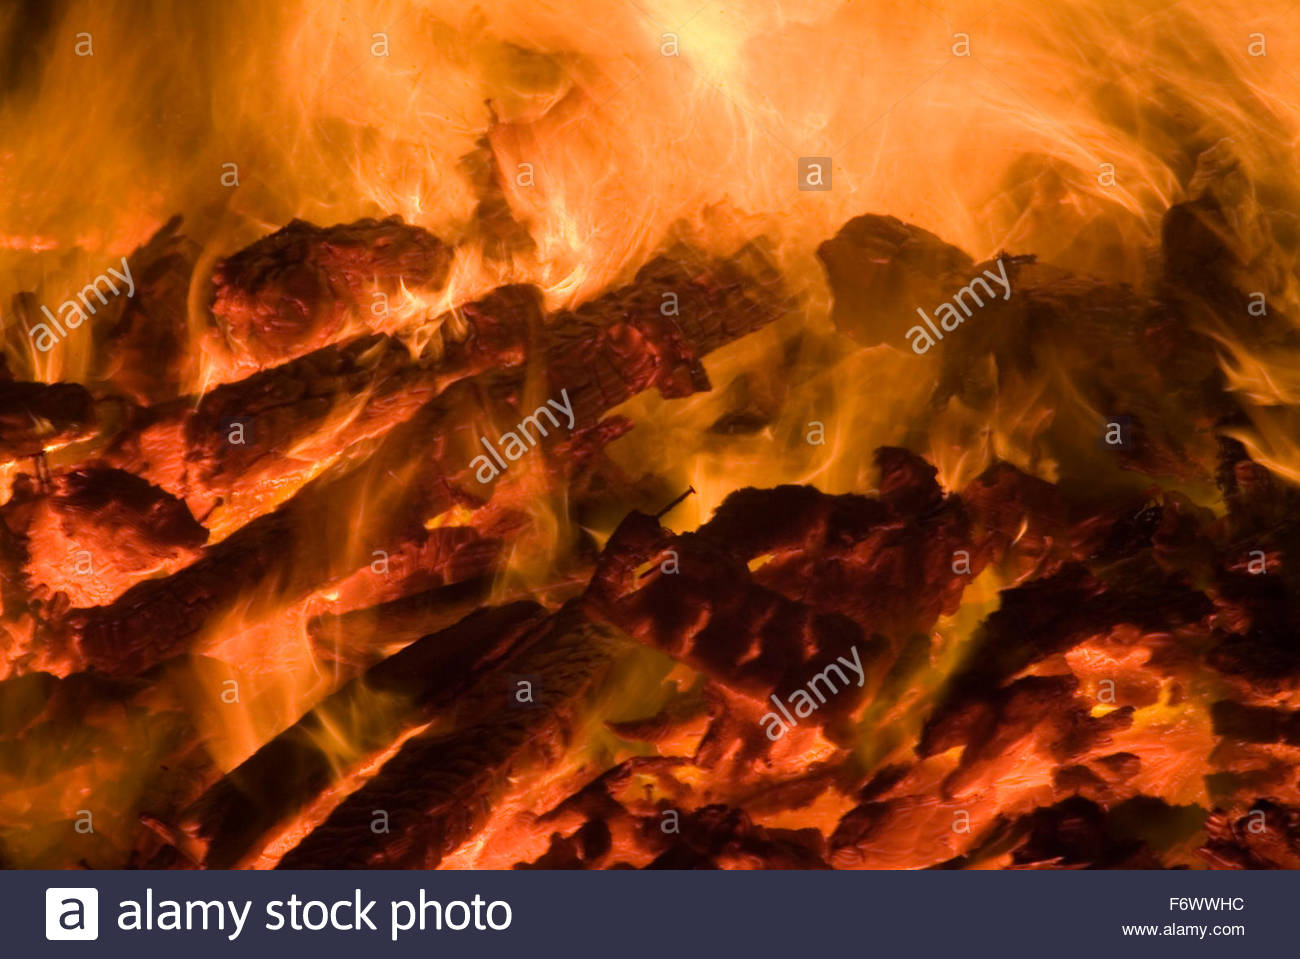 Burning Wood - Stock Image